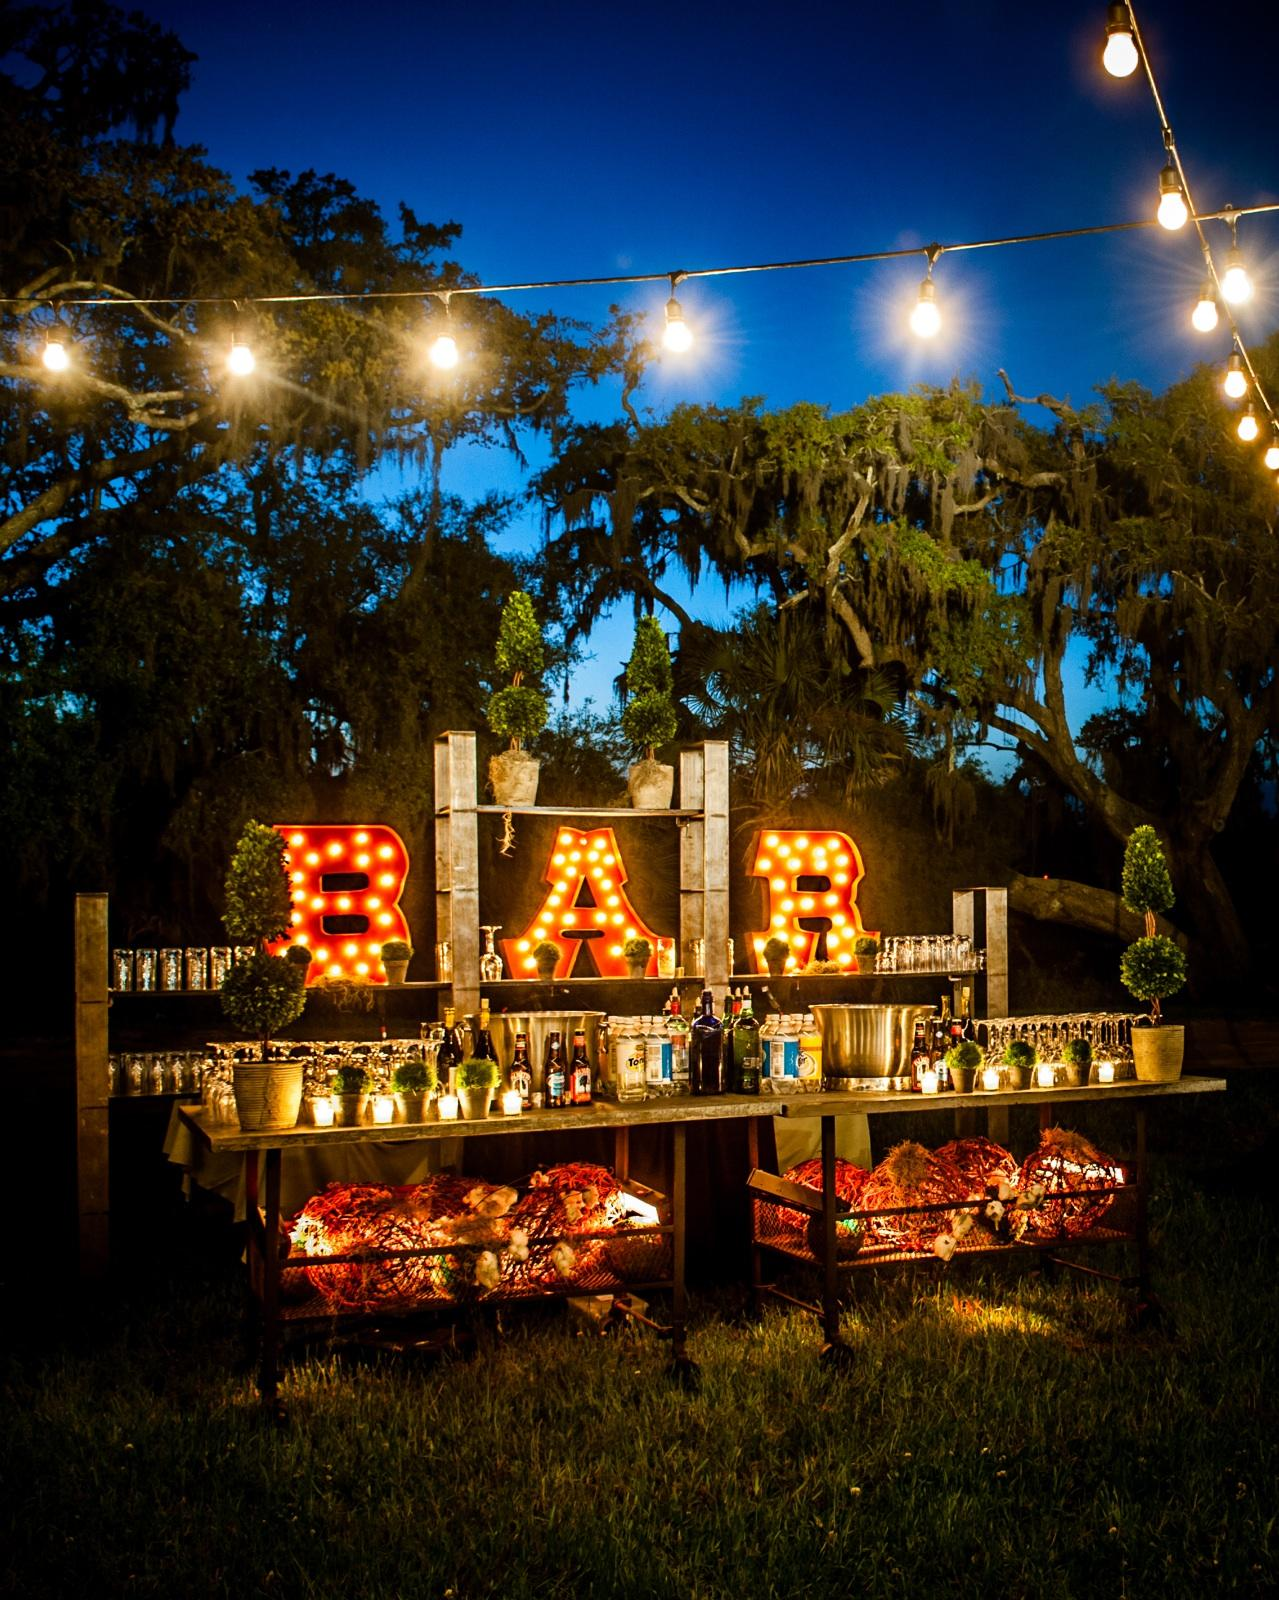 Diy Outdoor Party Lighting Ideas 10 diy outdoor party lighting ...